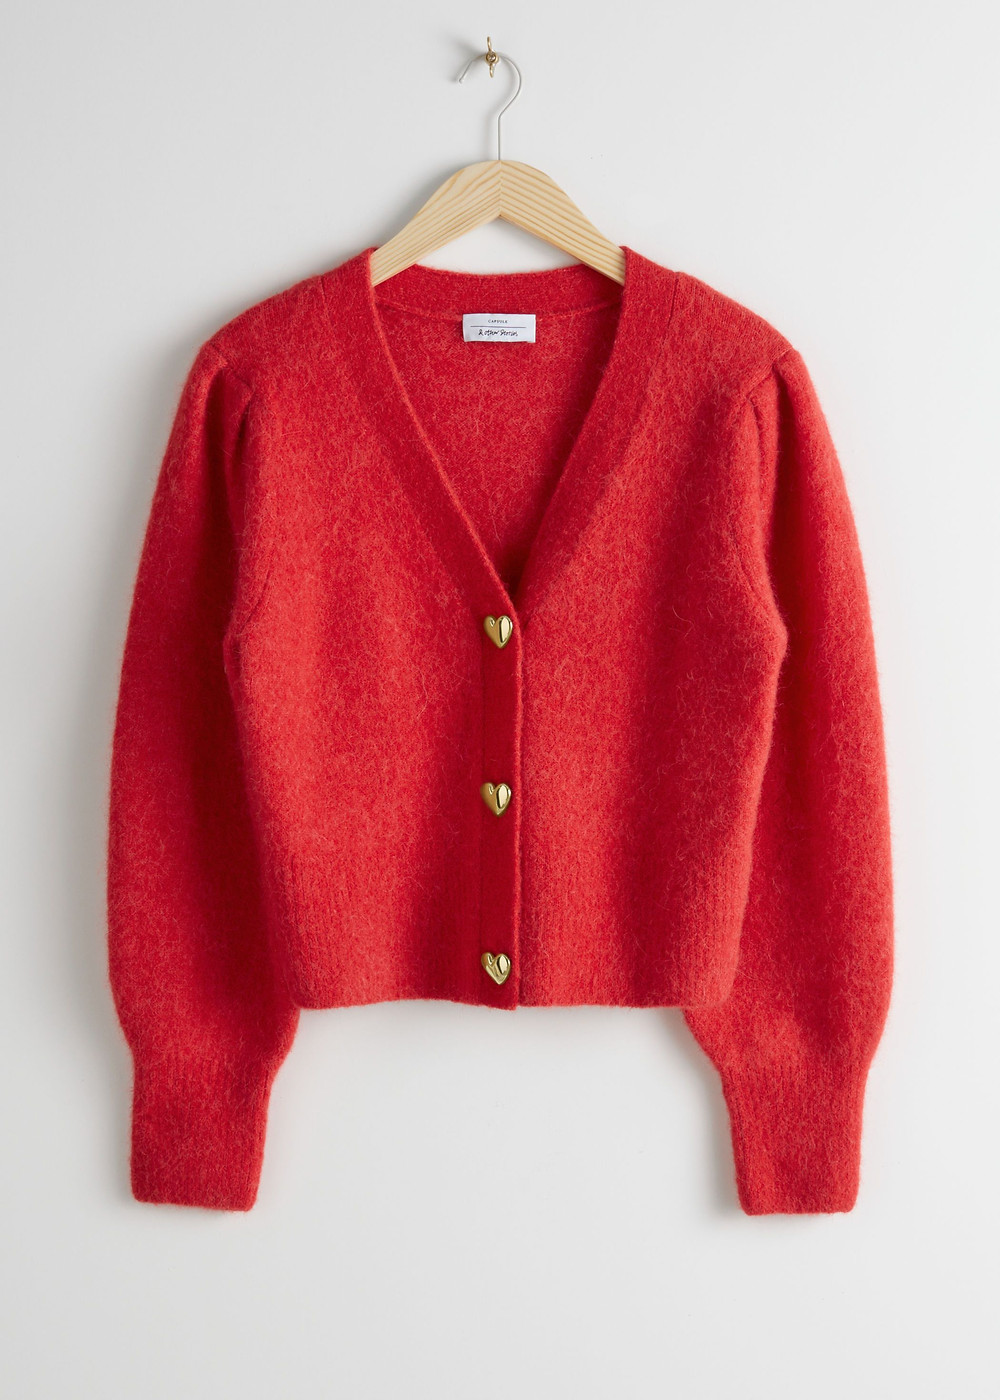 Cardigan trend, My Savvy Fashion Picks For Autumn/Winter 2020,The Image Tree Blog